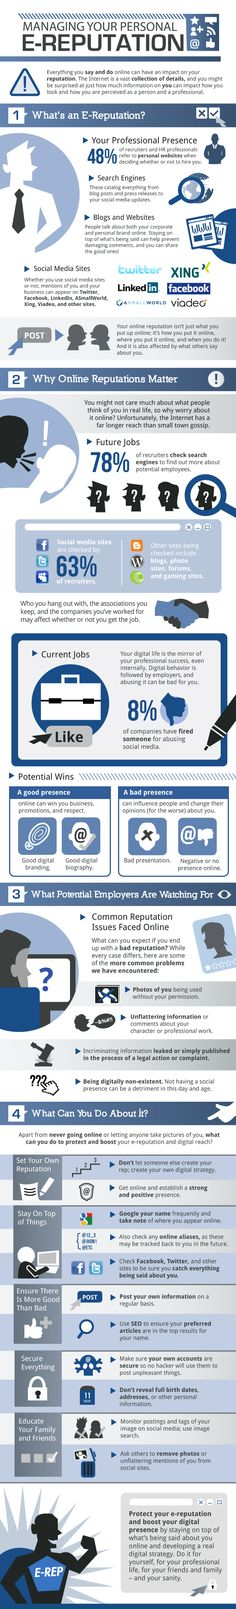 Online Management Your Personal E-Reputation.